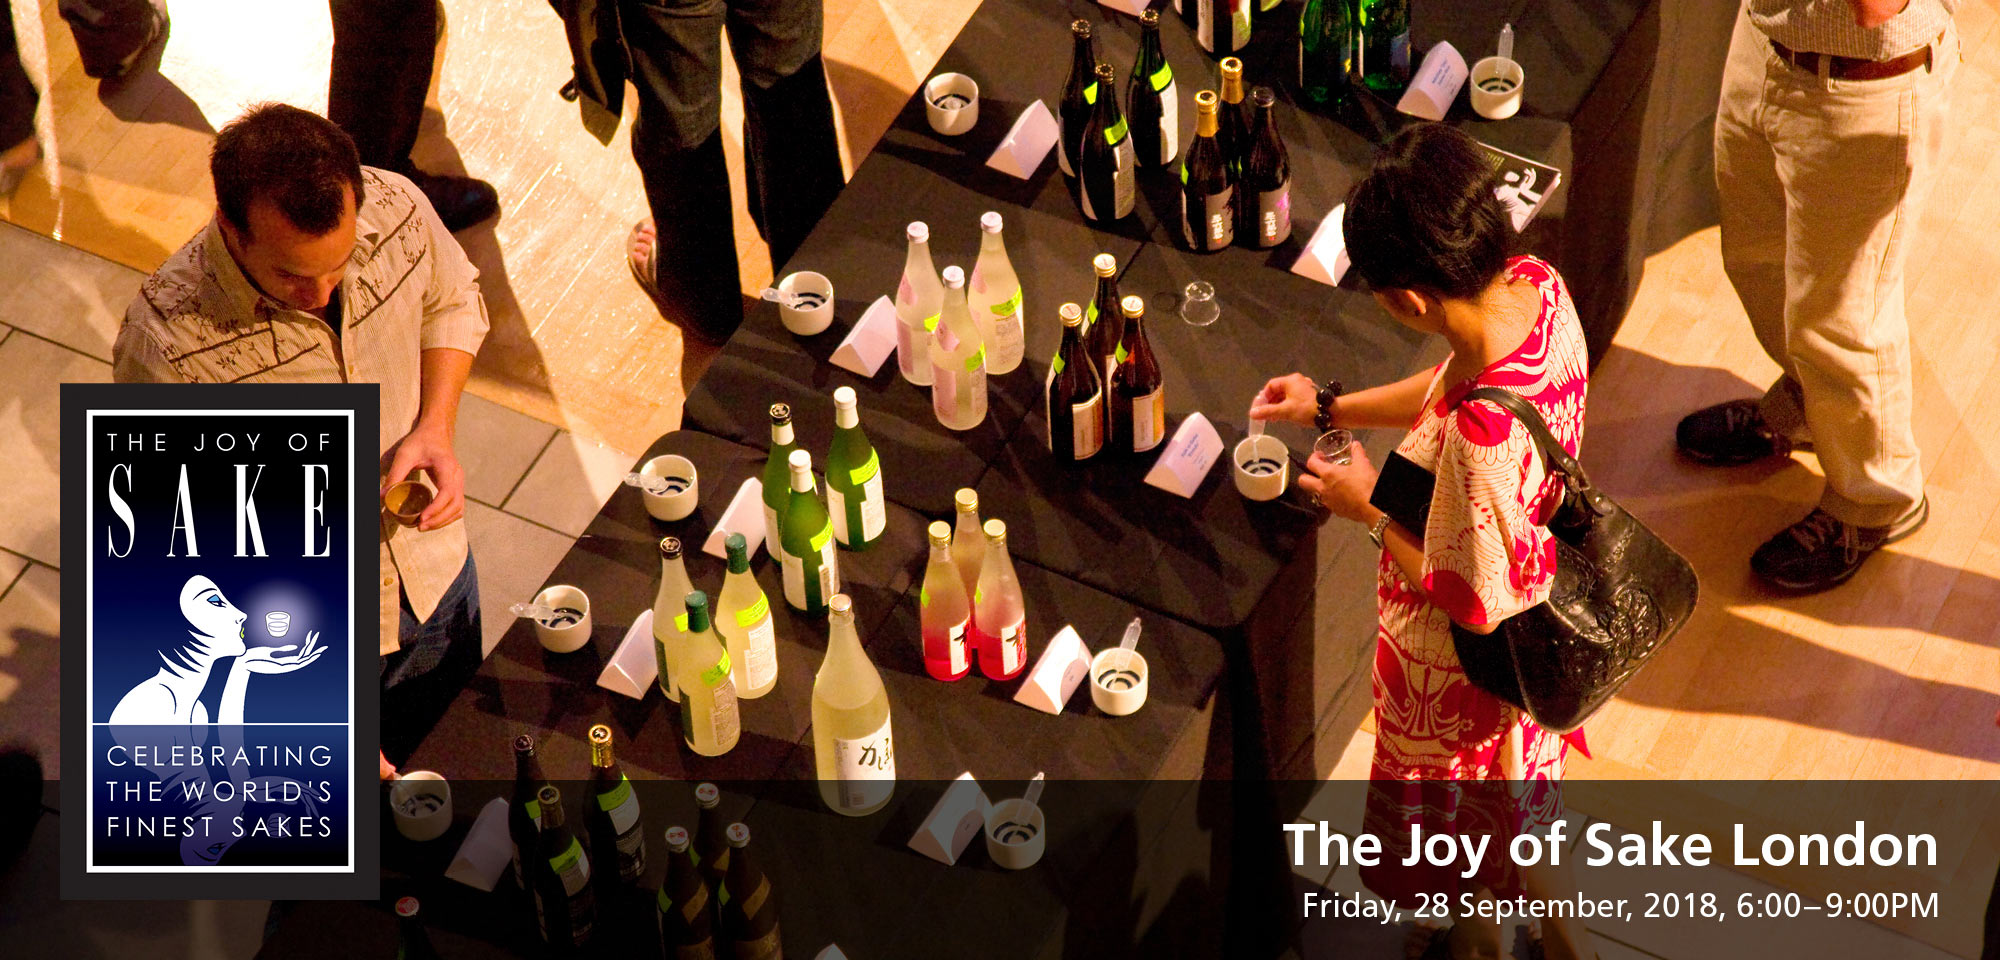 The Joy of Sake